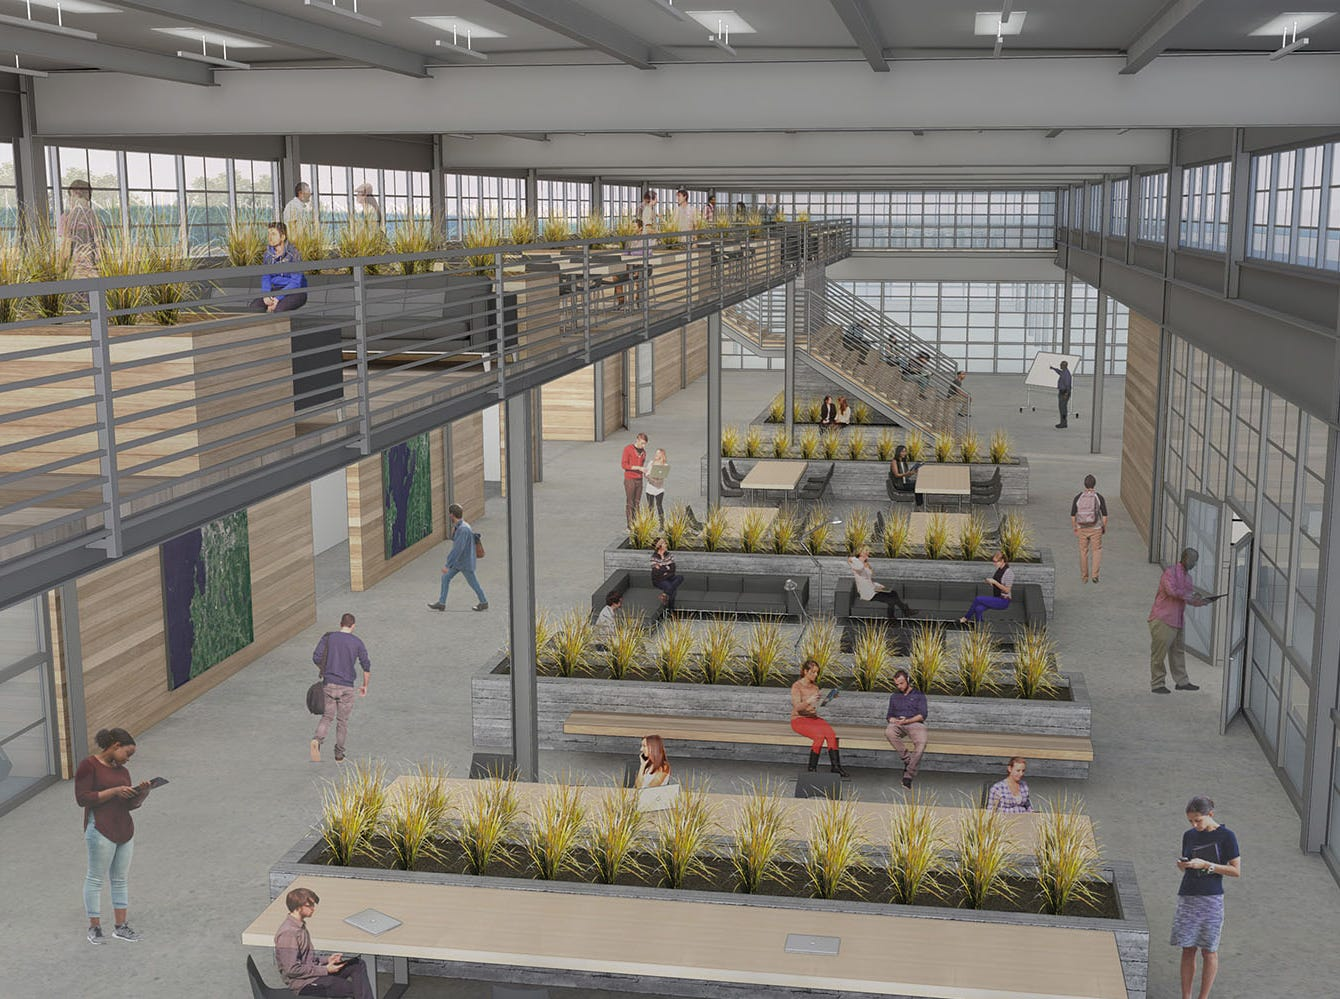 An elevated mezzanine floor is shown in this 2019 rendering of Hula Lakeside's proposed renovations to the old Blodgett Oven factory on Lakeside Avenue in Burlington